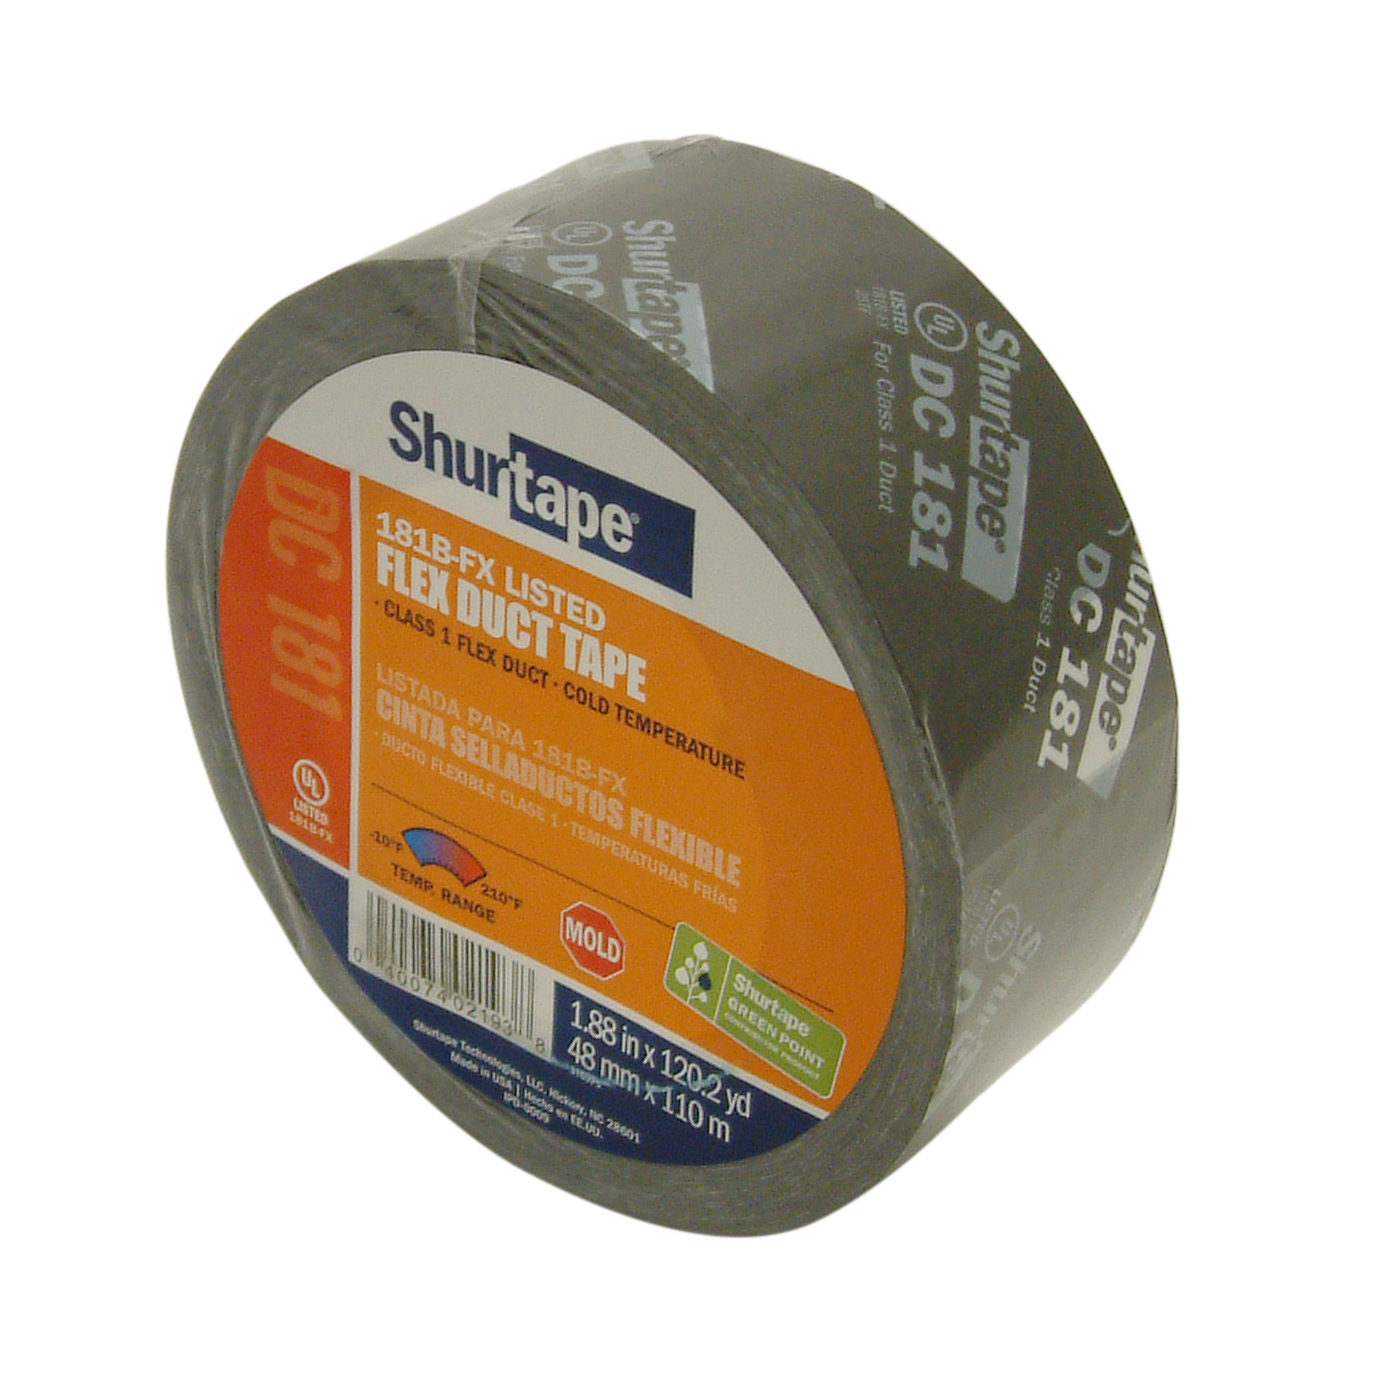 Shurtape DC-181 UL 181B-FX Listed Film Tape: 2 in. x 120 yds. (Black with White printing)